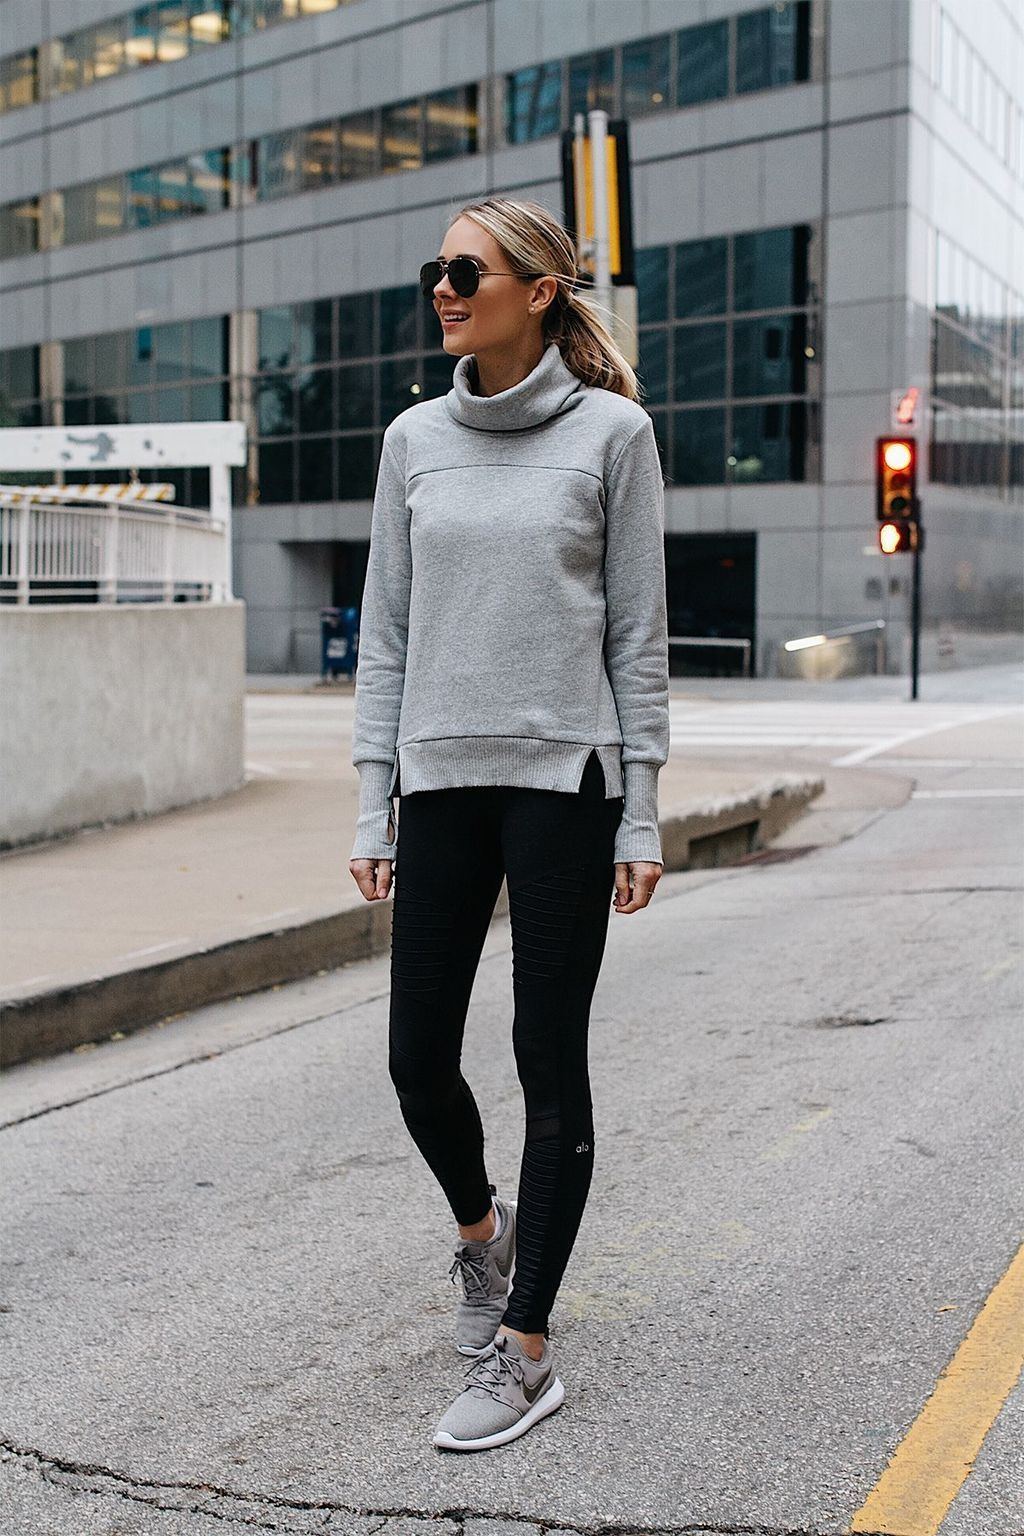 42 Relaxing Women Outfit Ideas With Shiny Leggings